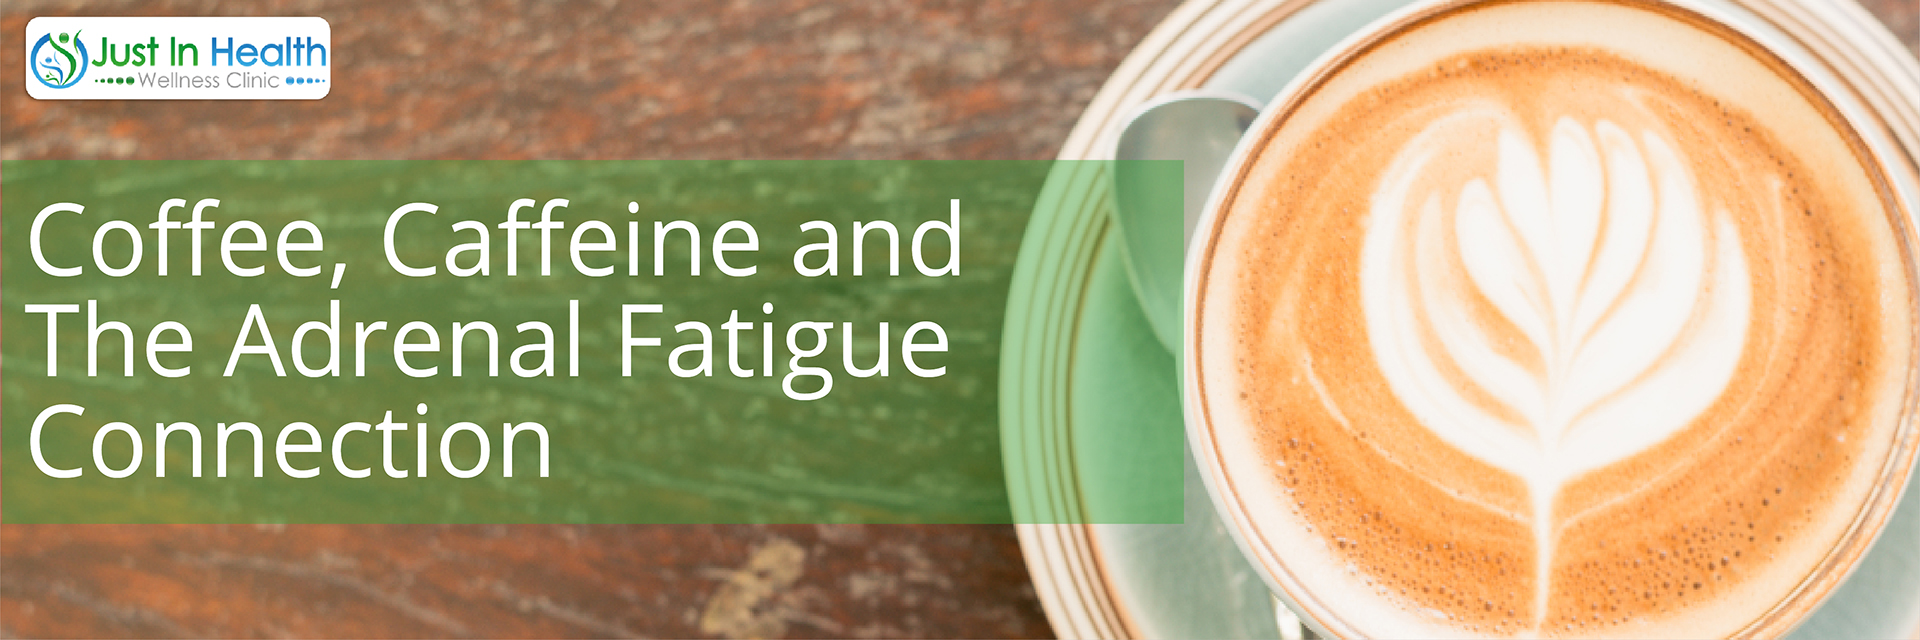 Coffee, caffeine, and the adrenal fatigue